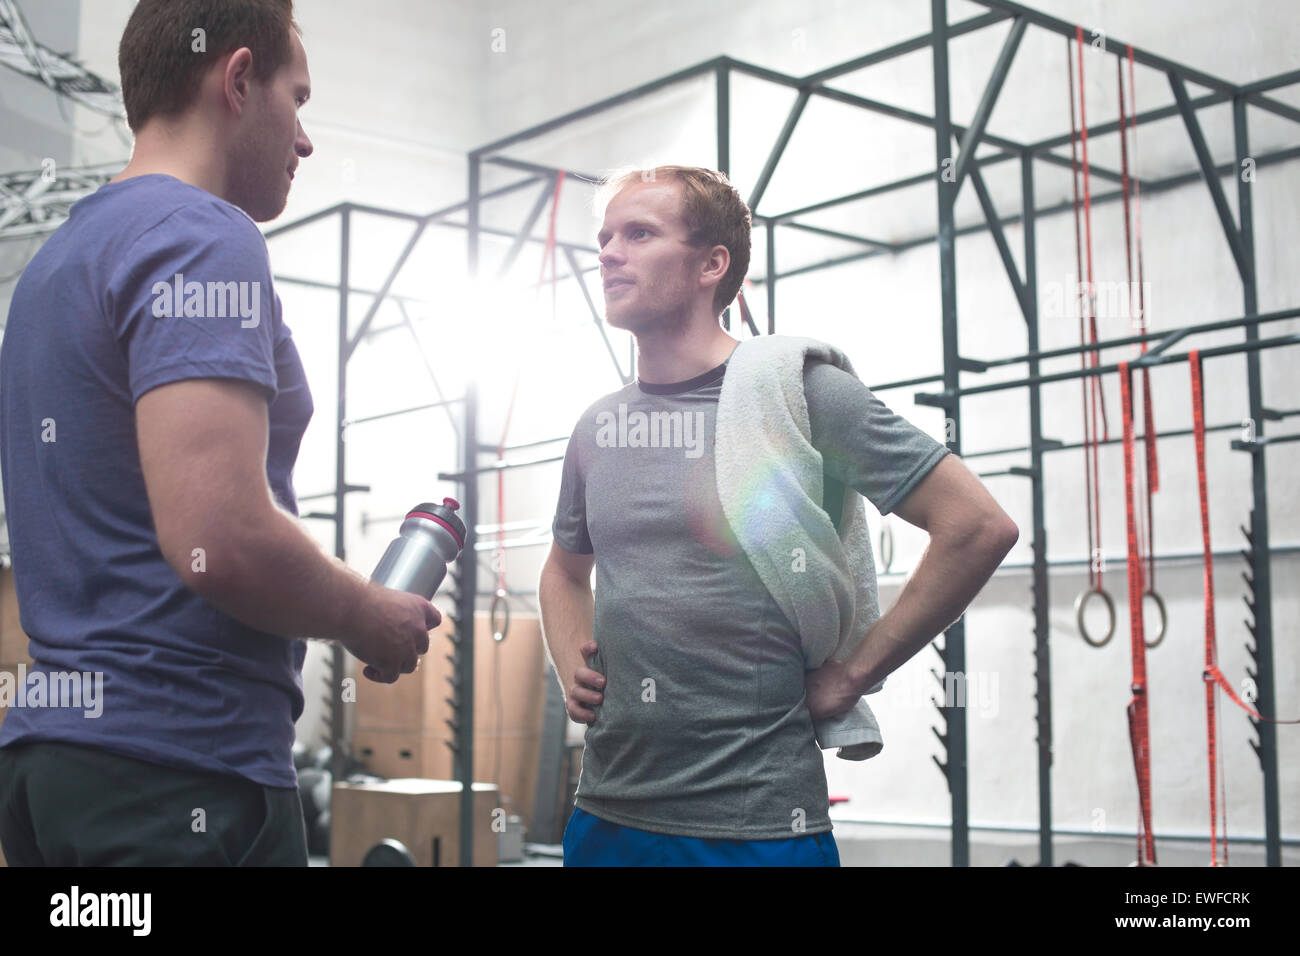 En parlant d'amis masculins gym crossfit Photo Stock